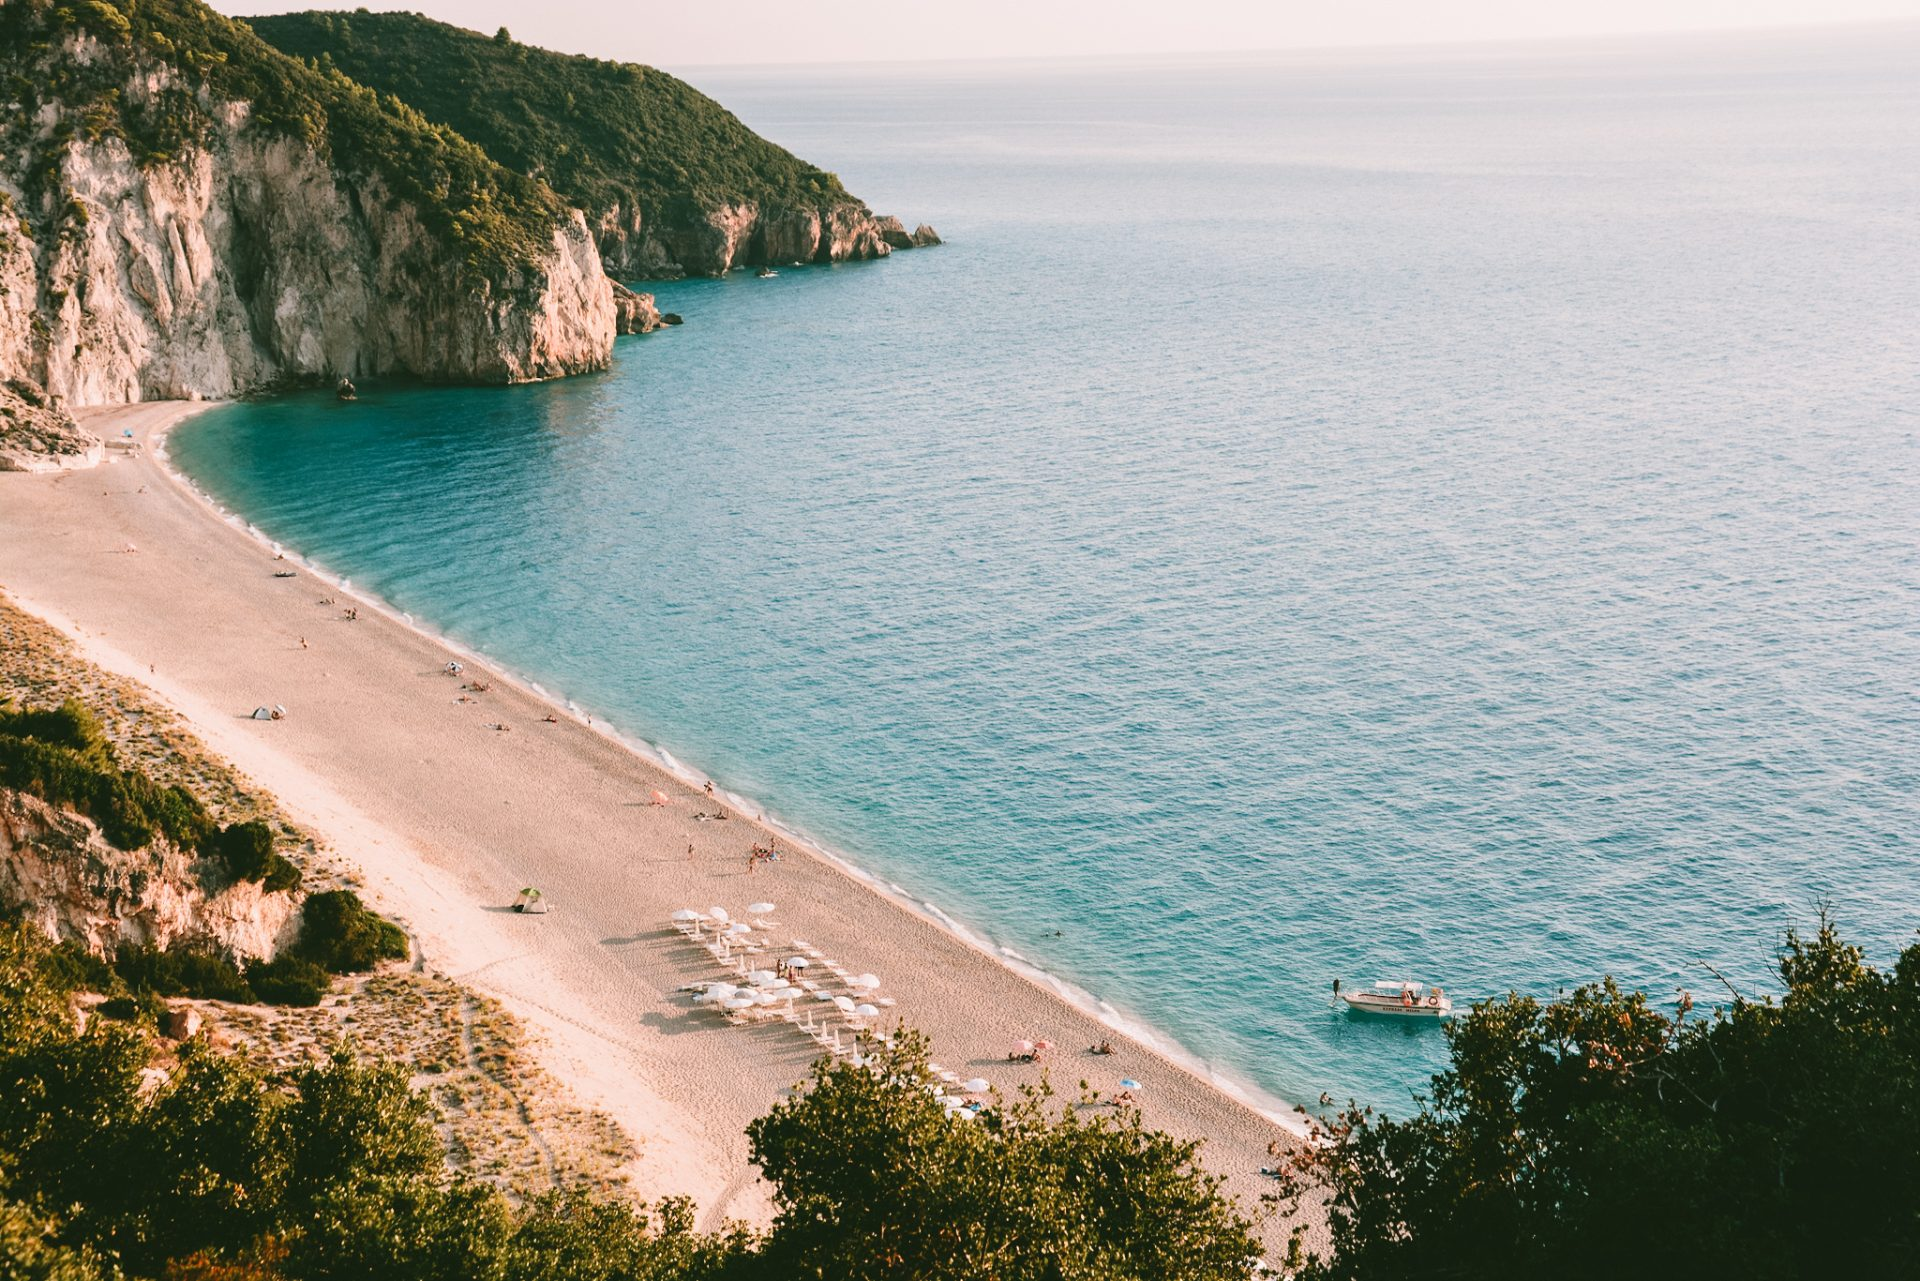 Things to do in Lefkada, Greece